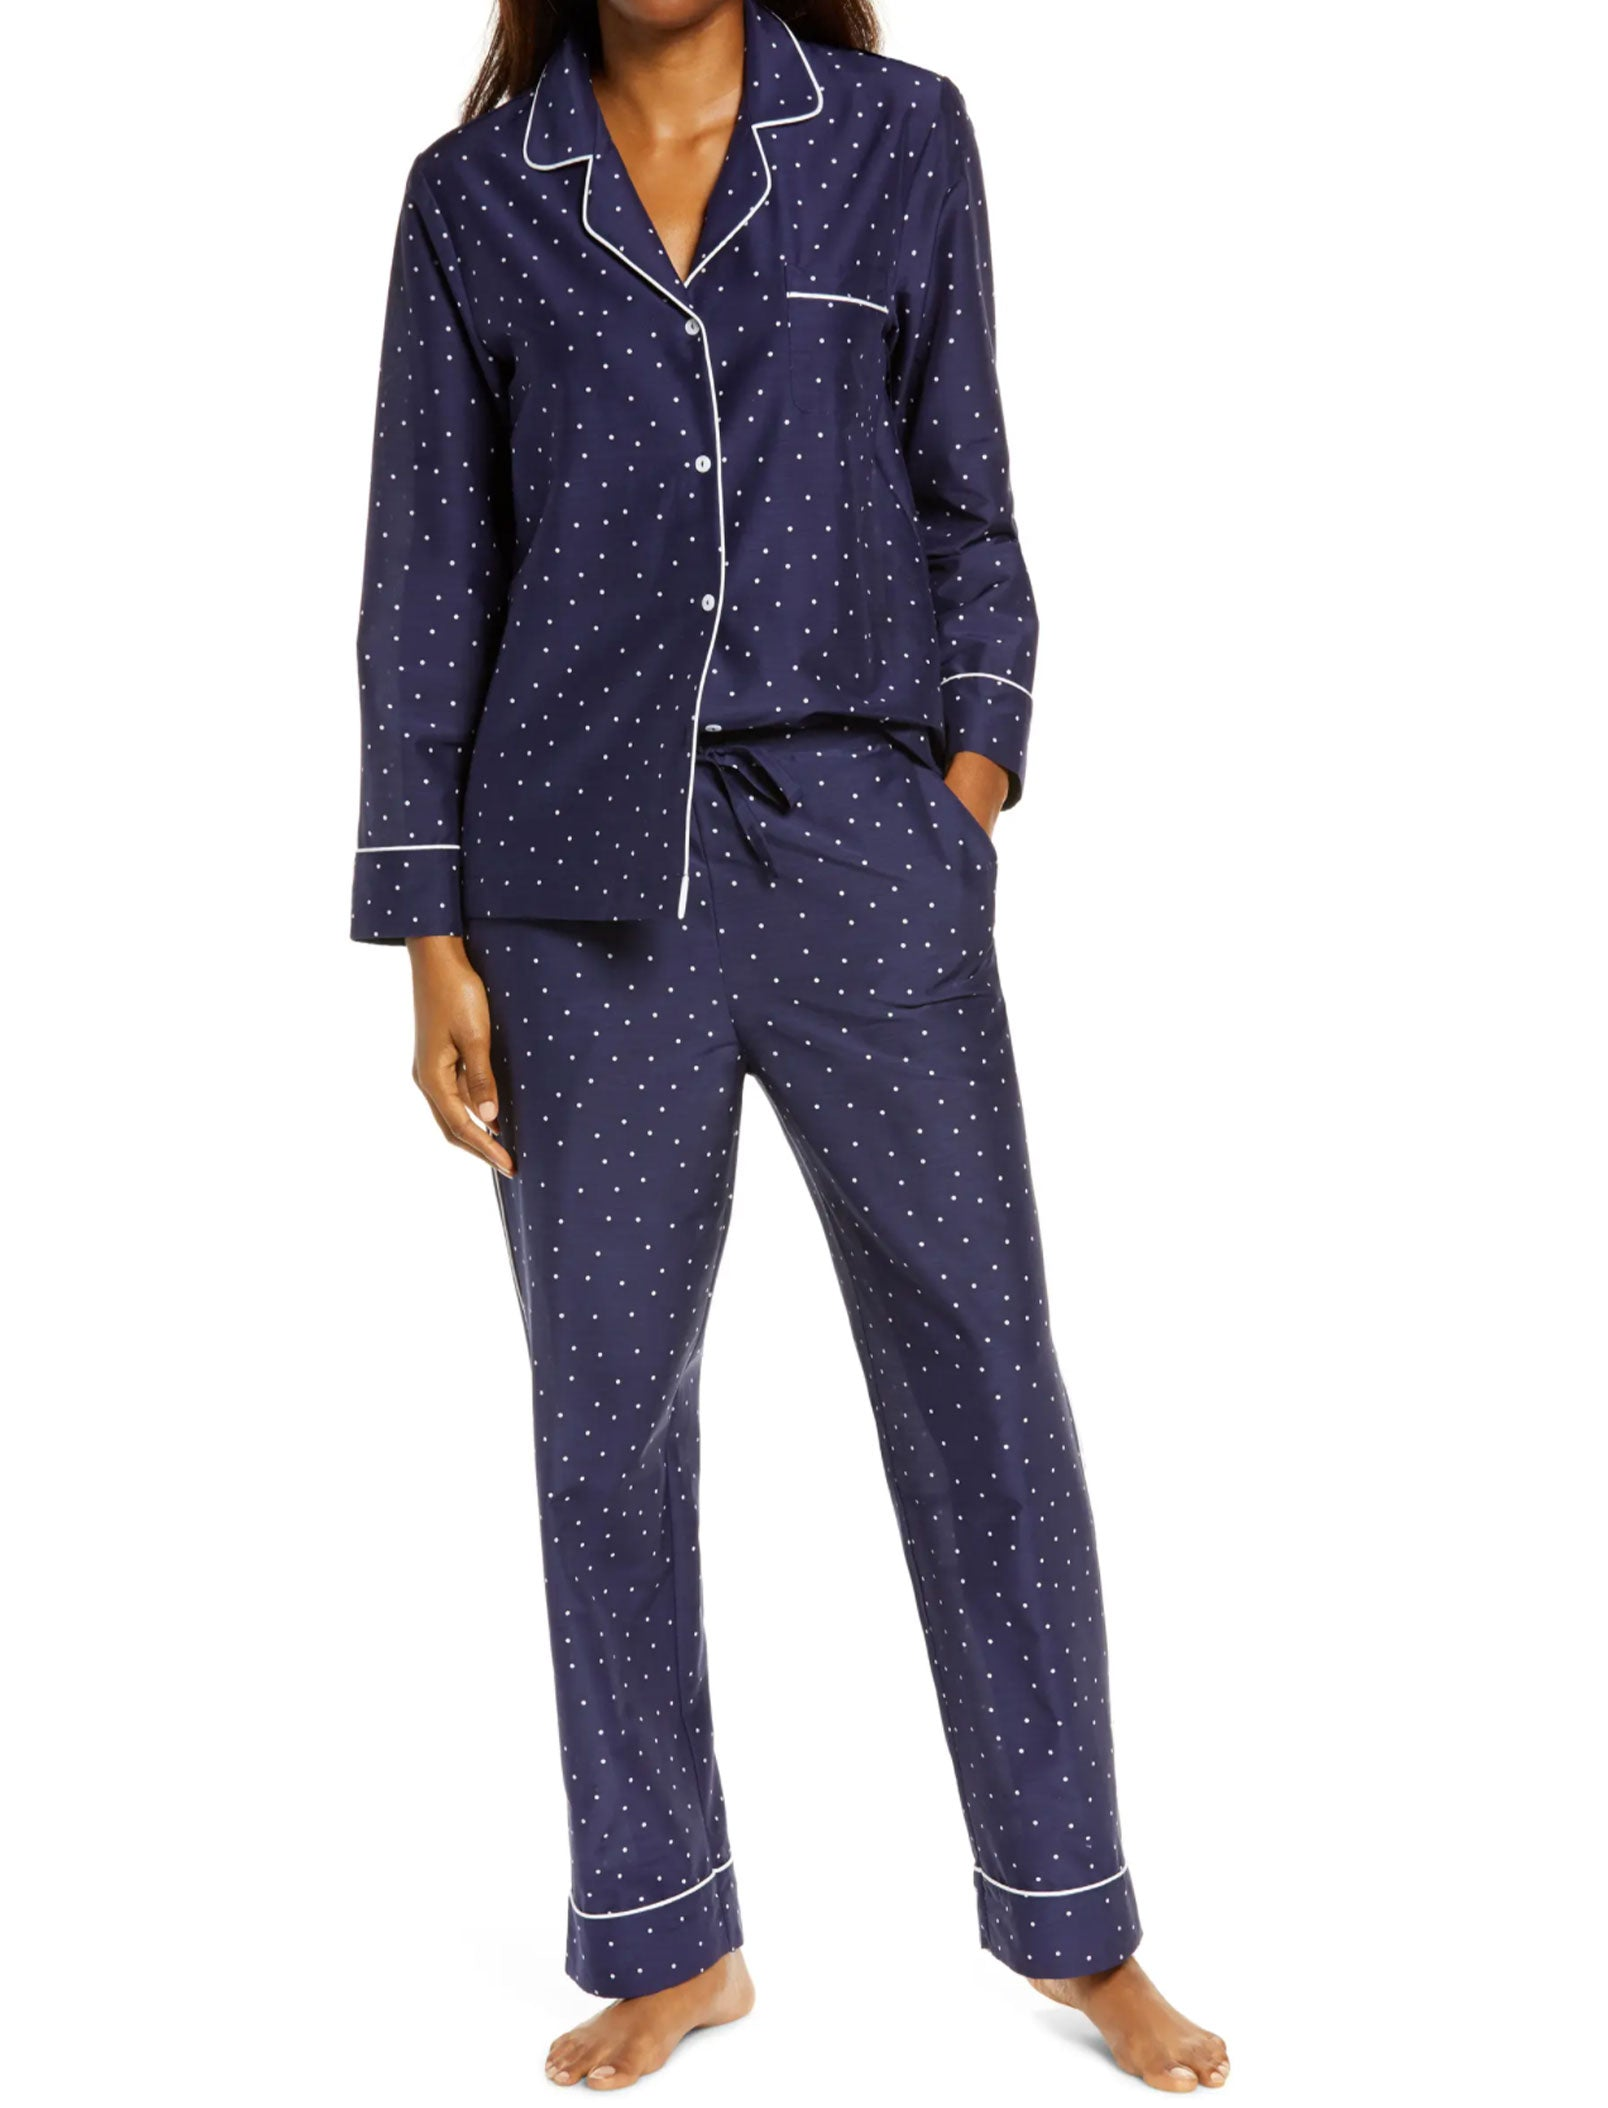 Mia Luxe Full Length Pajama in Navy Spot